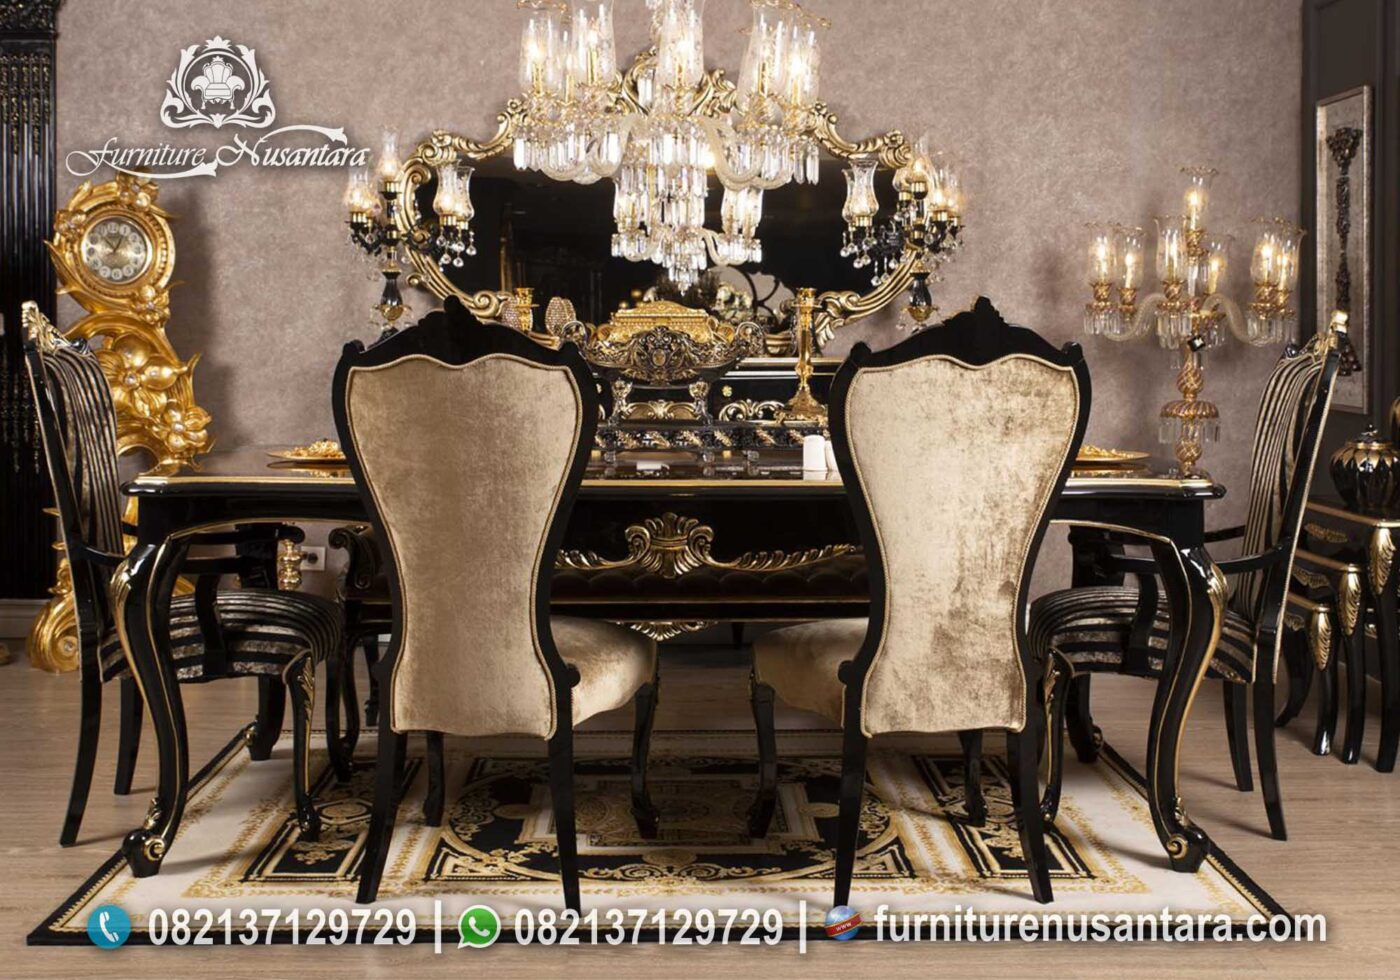 Meja Makan Black Matte Gold Colour MM-26, Furniture Nusantara